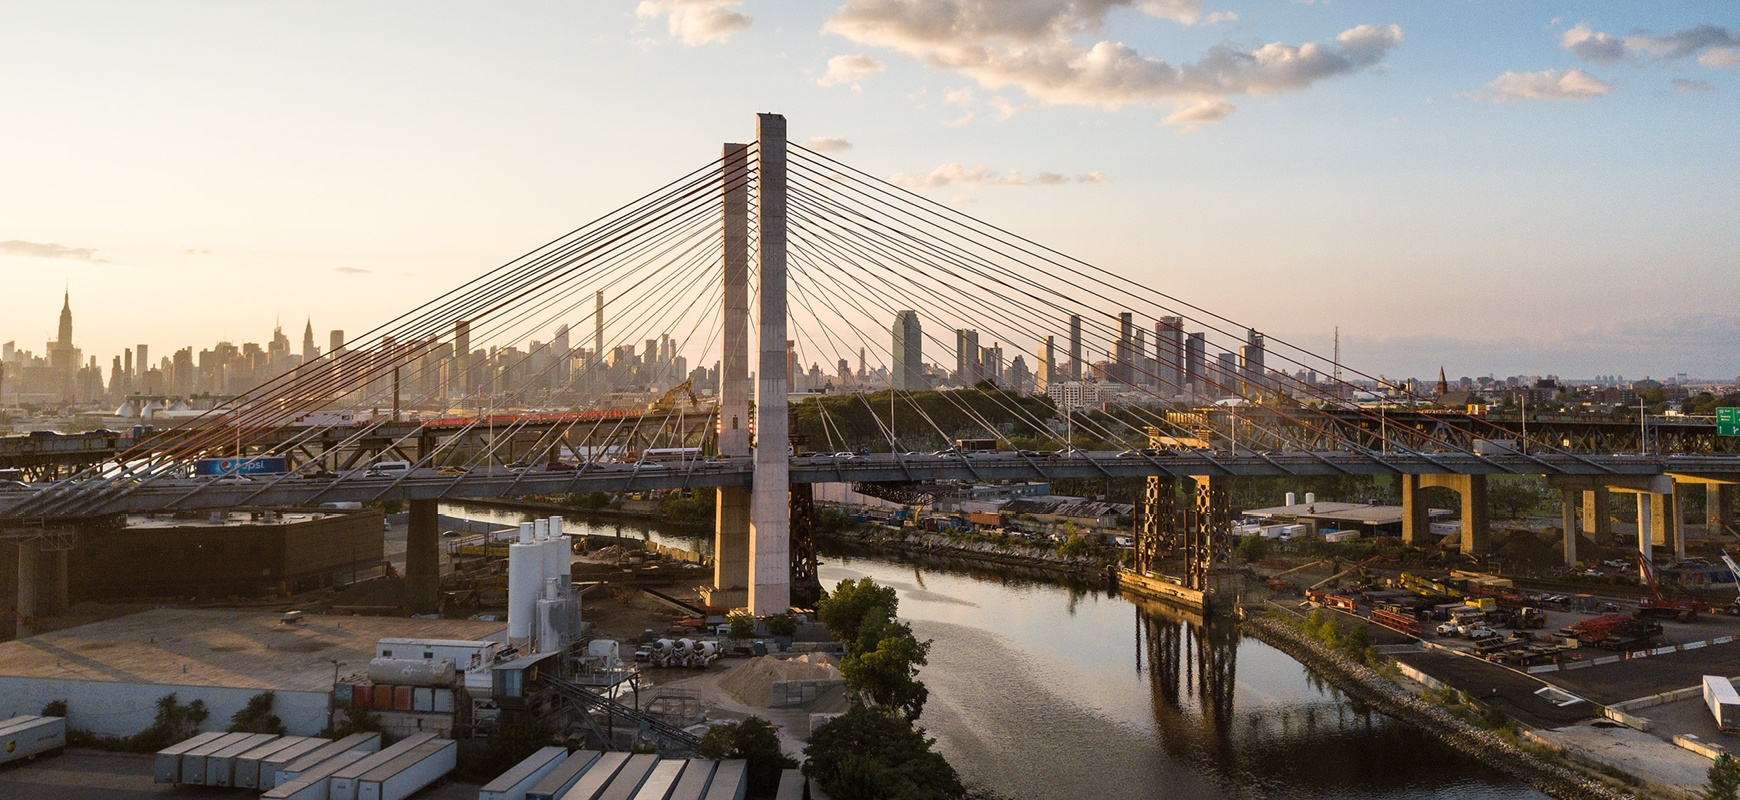 The Kosciuszko Bridge